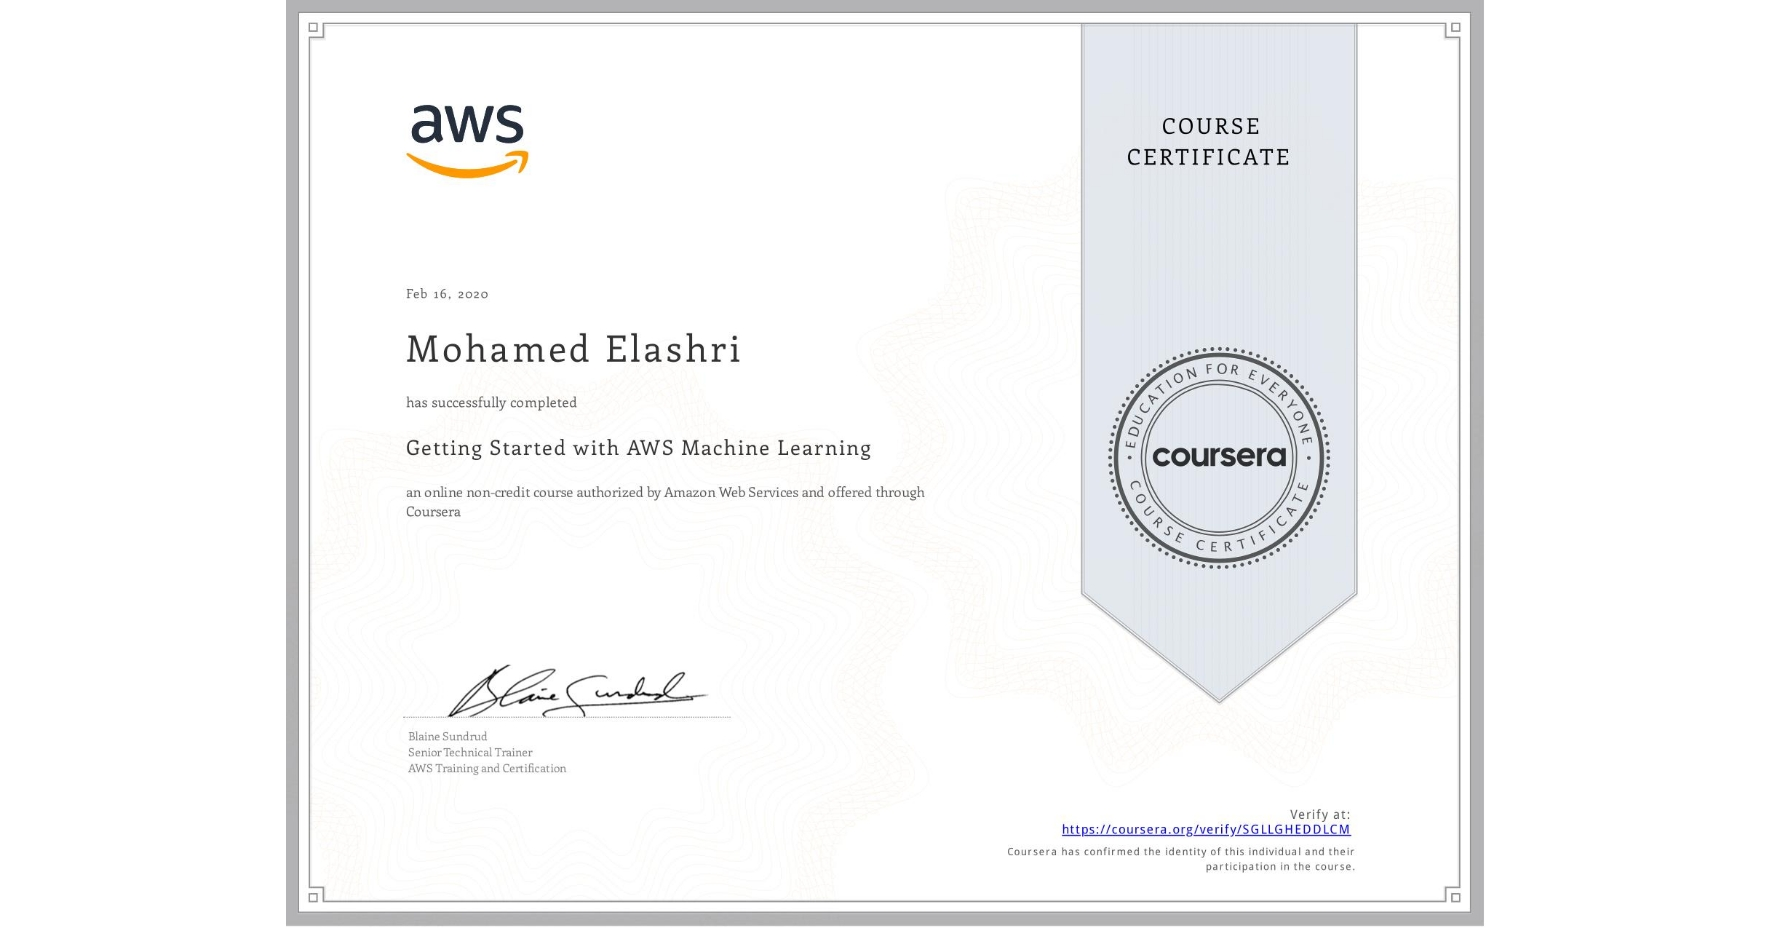 View certificate for Mohamed Elashri, Getting Started with AWS Machine Learning, an online non-credit course authorized by Amazon Web Services and offered through Coursera